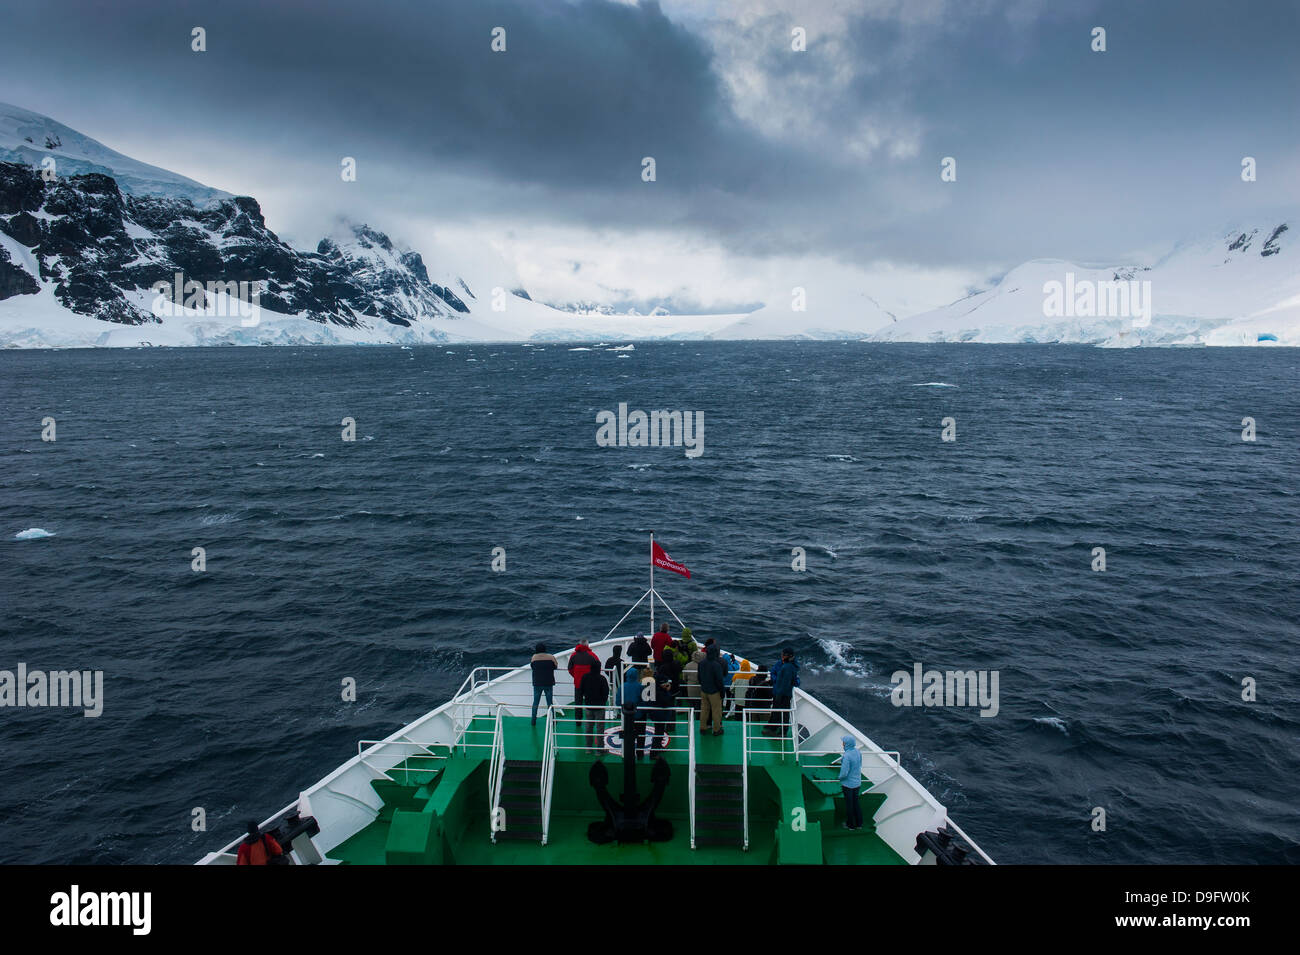 Dark clouds over the mountains and glaciers of Port Lockroy research station, Antarctica, Polar Regions - Stock Image